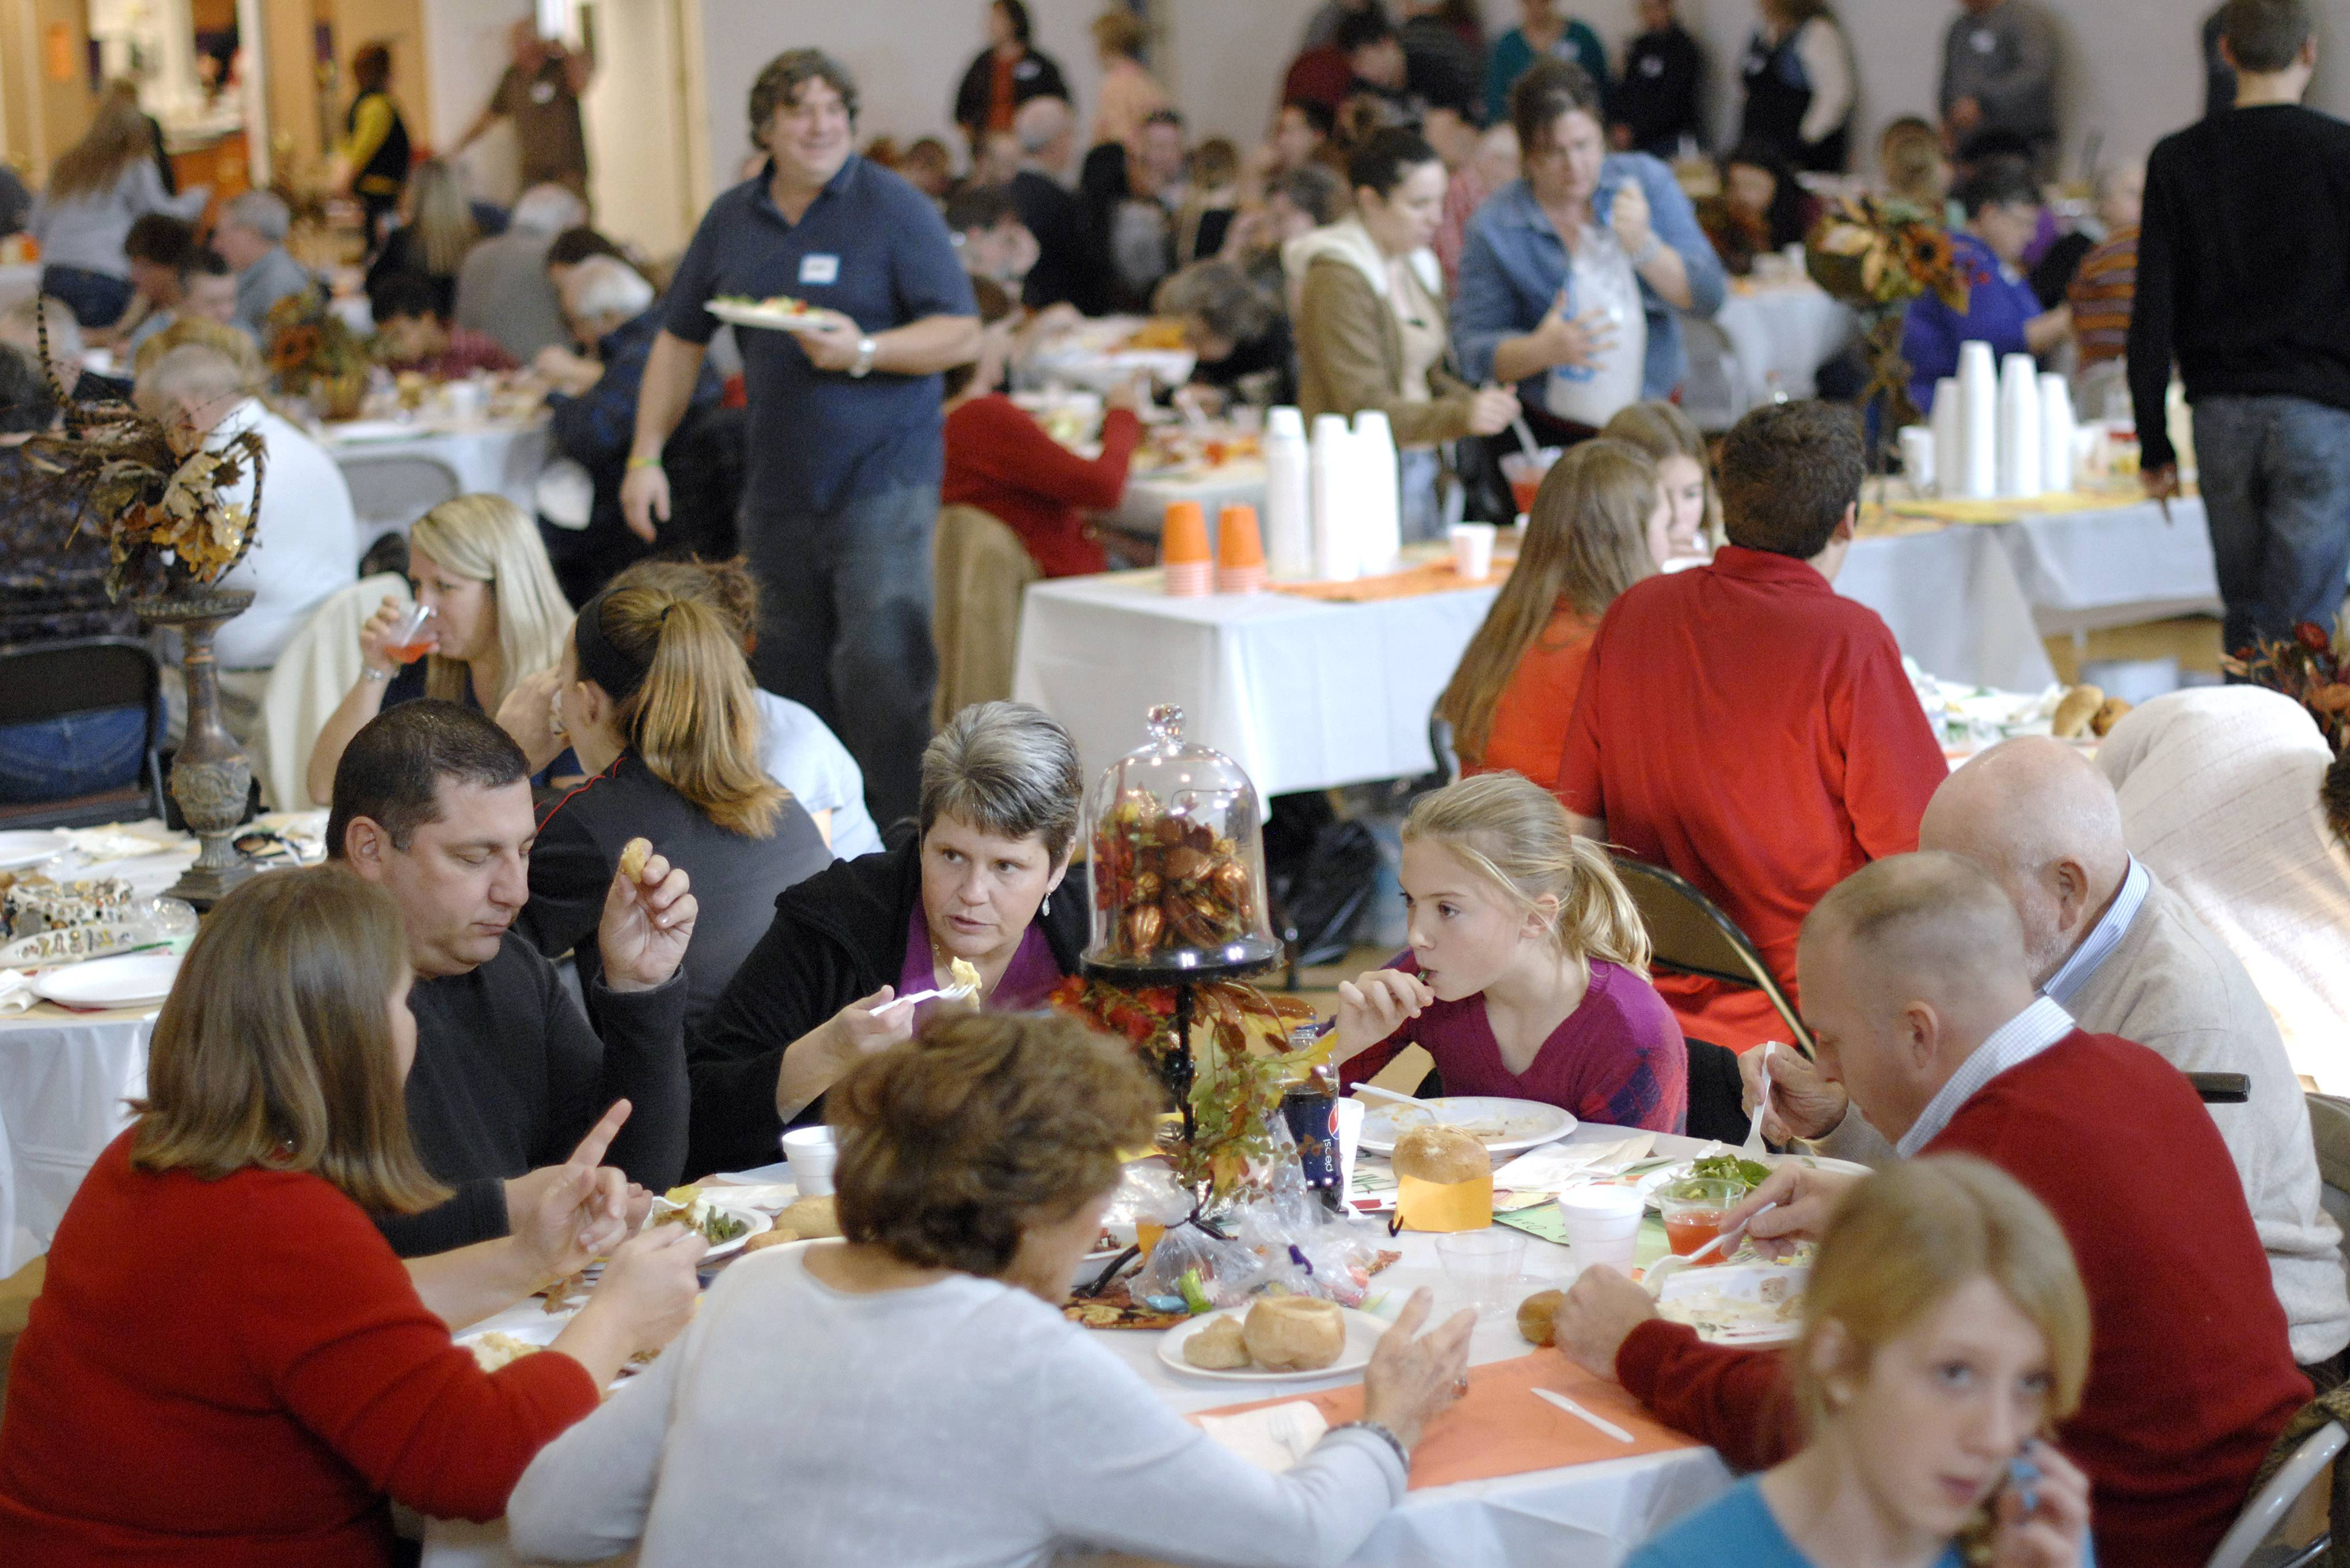 Lazarus House, a charitable organization serving the homeless and those at-risk of becoming homeless, hosts a free community Thanksgiving feast every year at the Salvation Army in St. Charles.